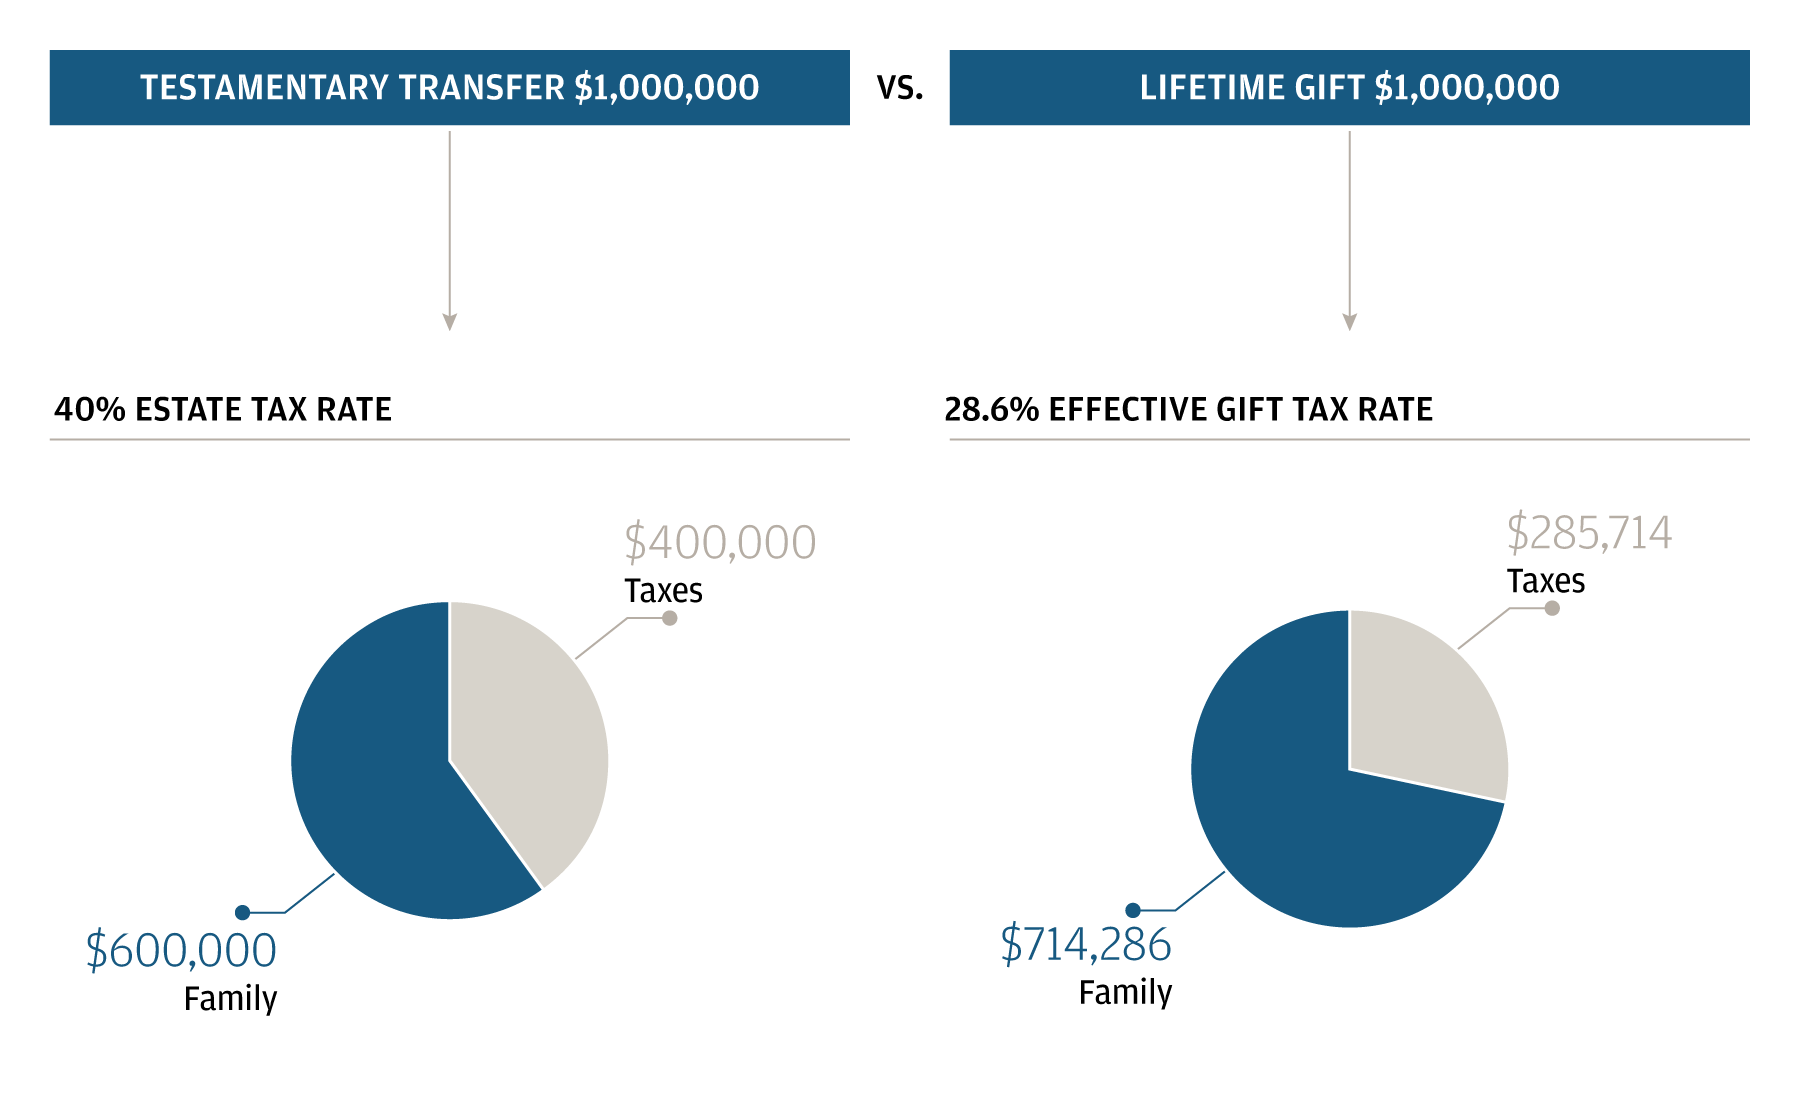 These two pie charts illustrate the way certain gifting strategies can help to minimize transfer taxes.